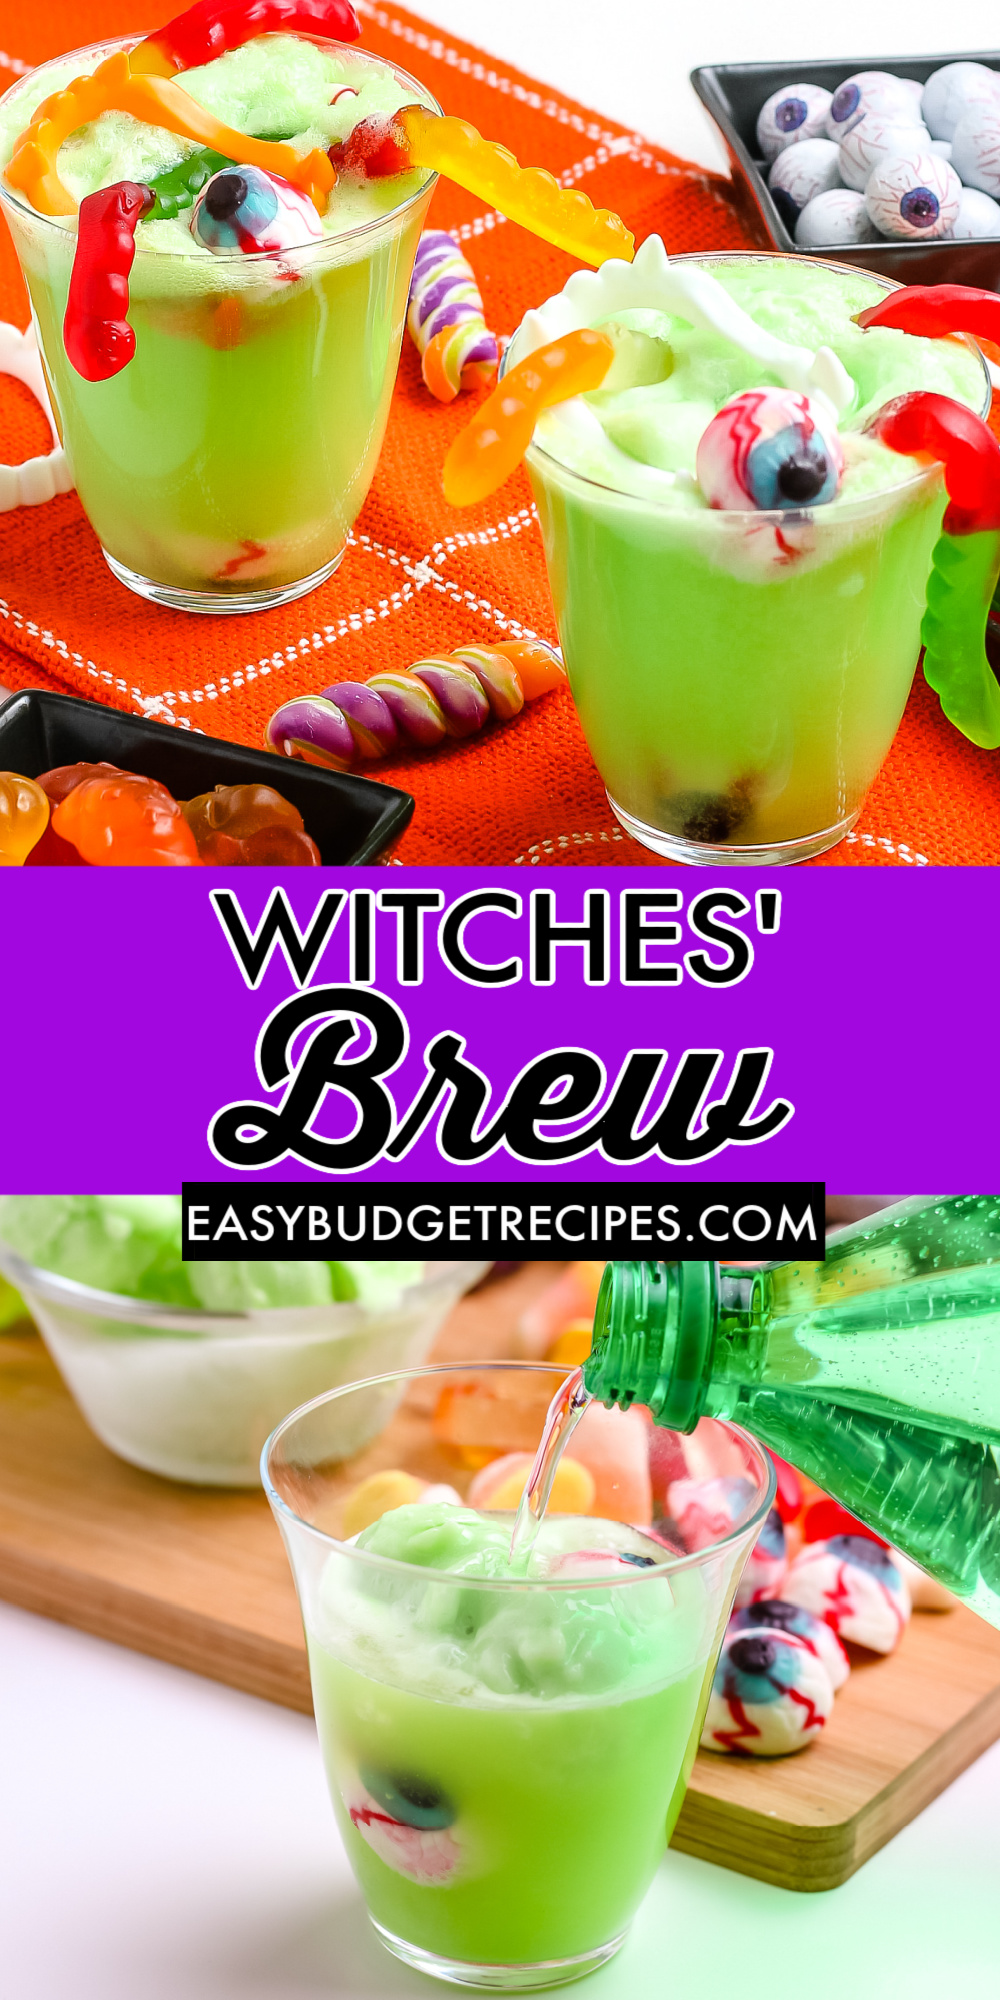 Witches' Brew is the perfect Halloween Drink. It's festive, easy to make, and very customizable. Kids love making these!  via @easybudgetrecipes